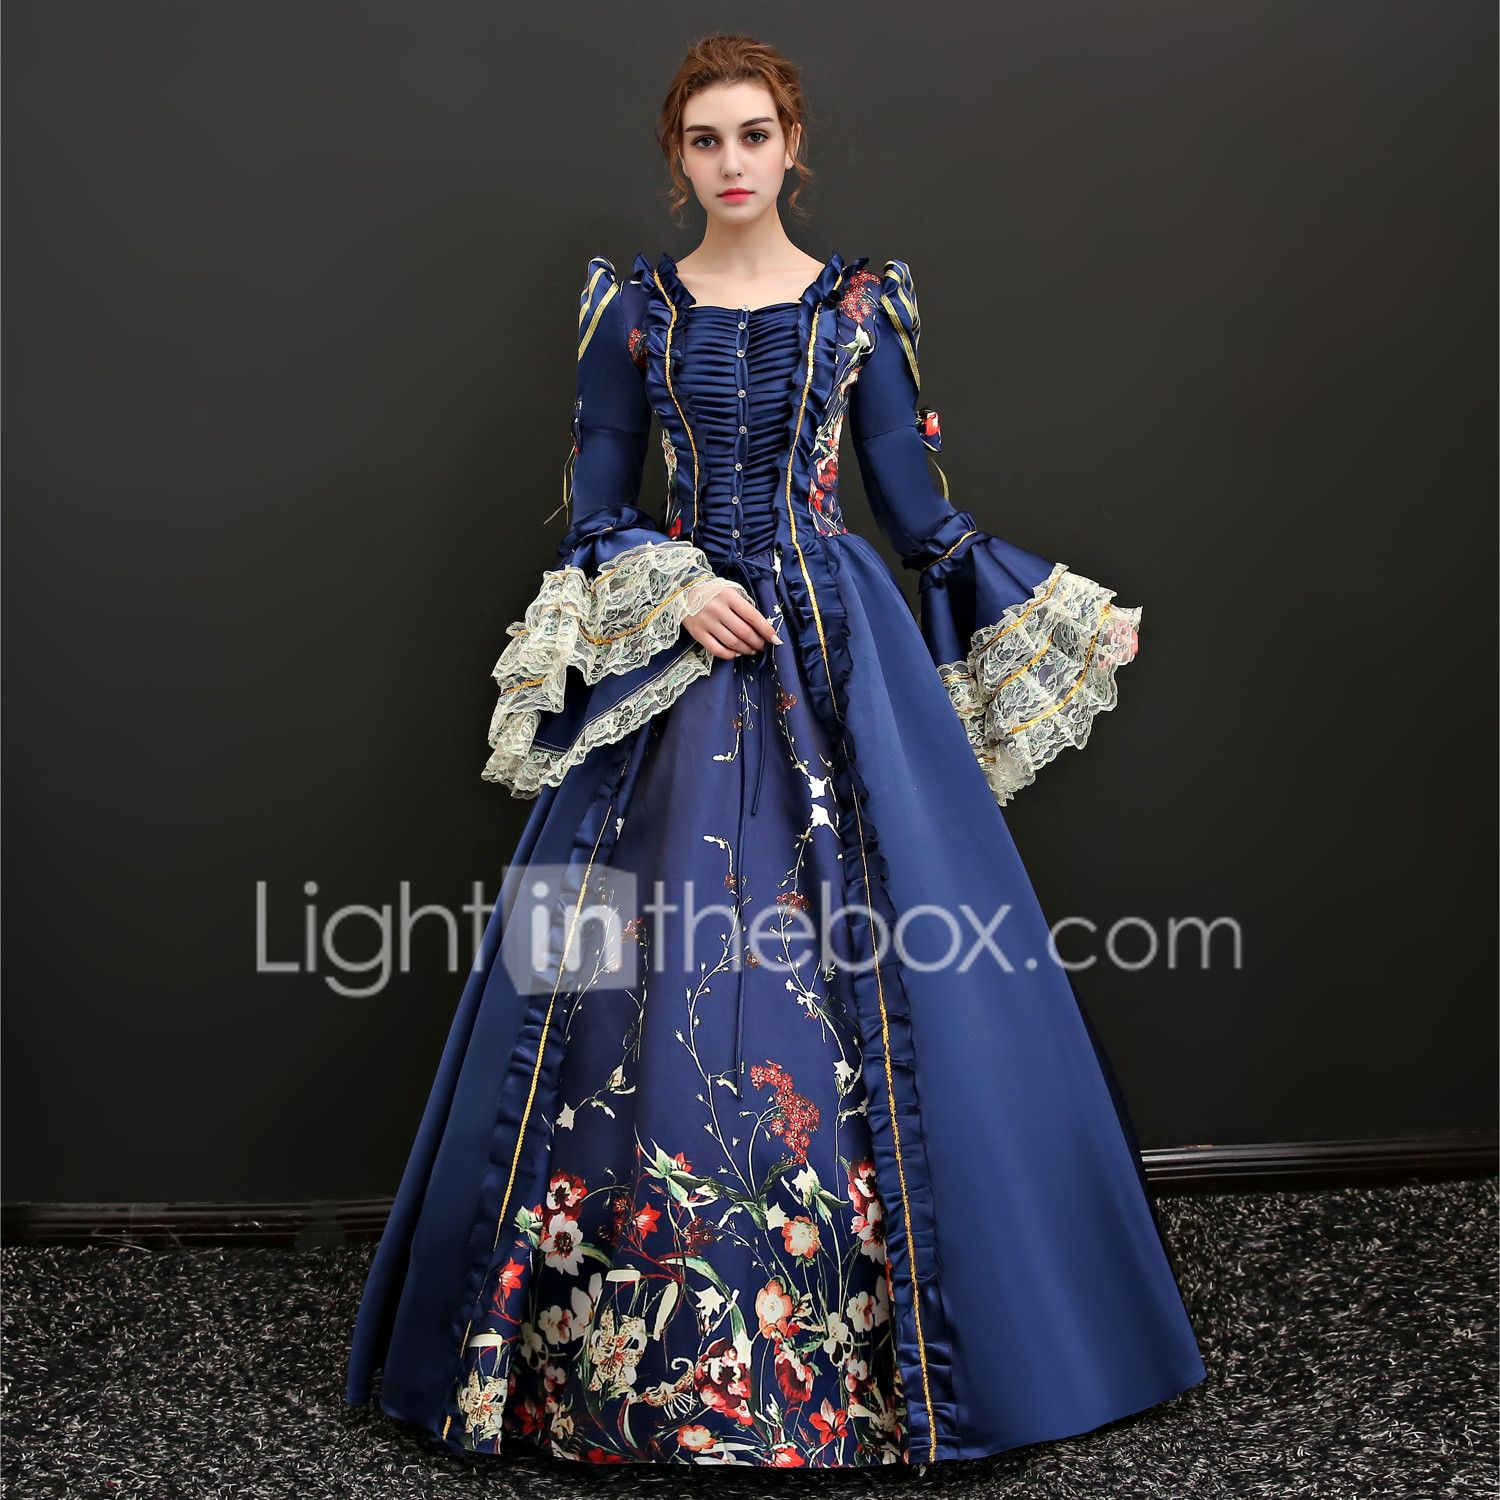 153 99 Queen Victoria Renaissance Vacation Dress Dress Outfits Party Costume Masquerade Women S Lace Costume Red Blue Vintage Cosplay 3 4 Length Sleeve Flo Dress Clothes For Women Royal Dresses Ball Gowns [ 1500 x 1500 Pixel ]